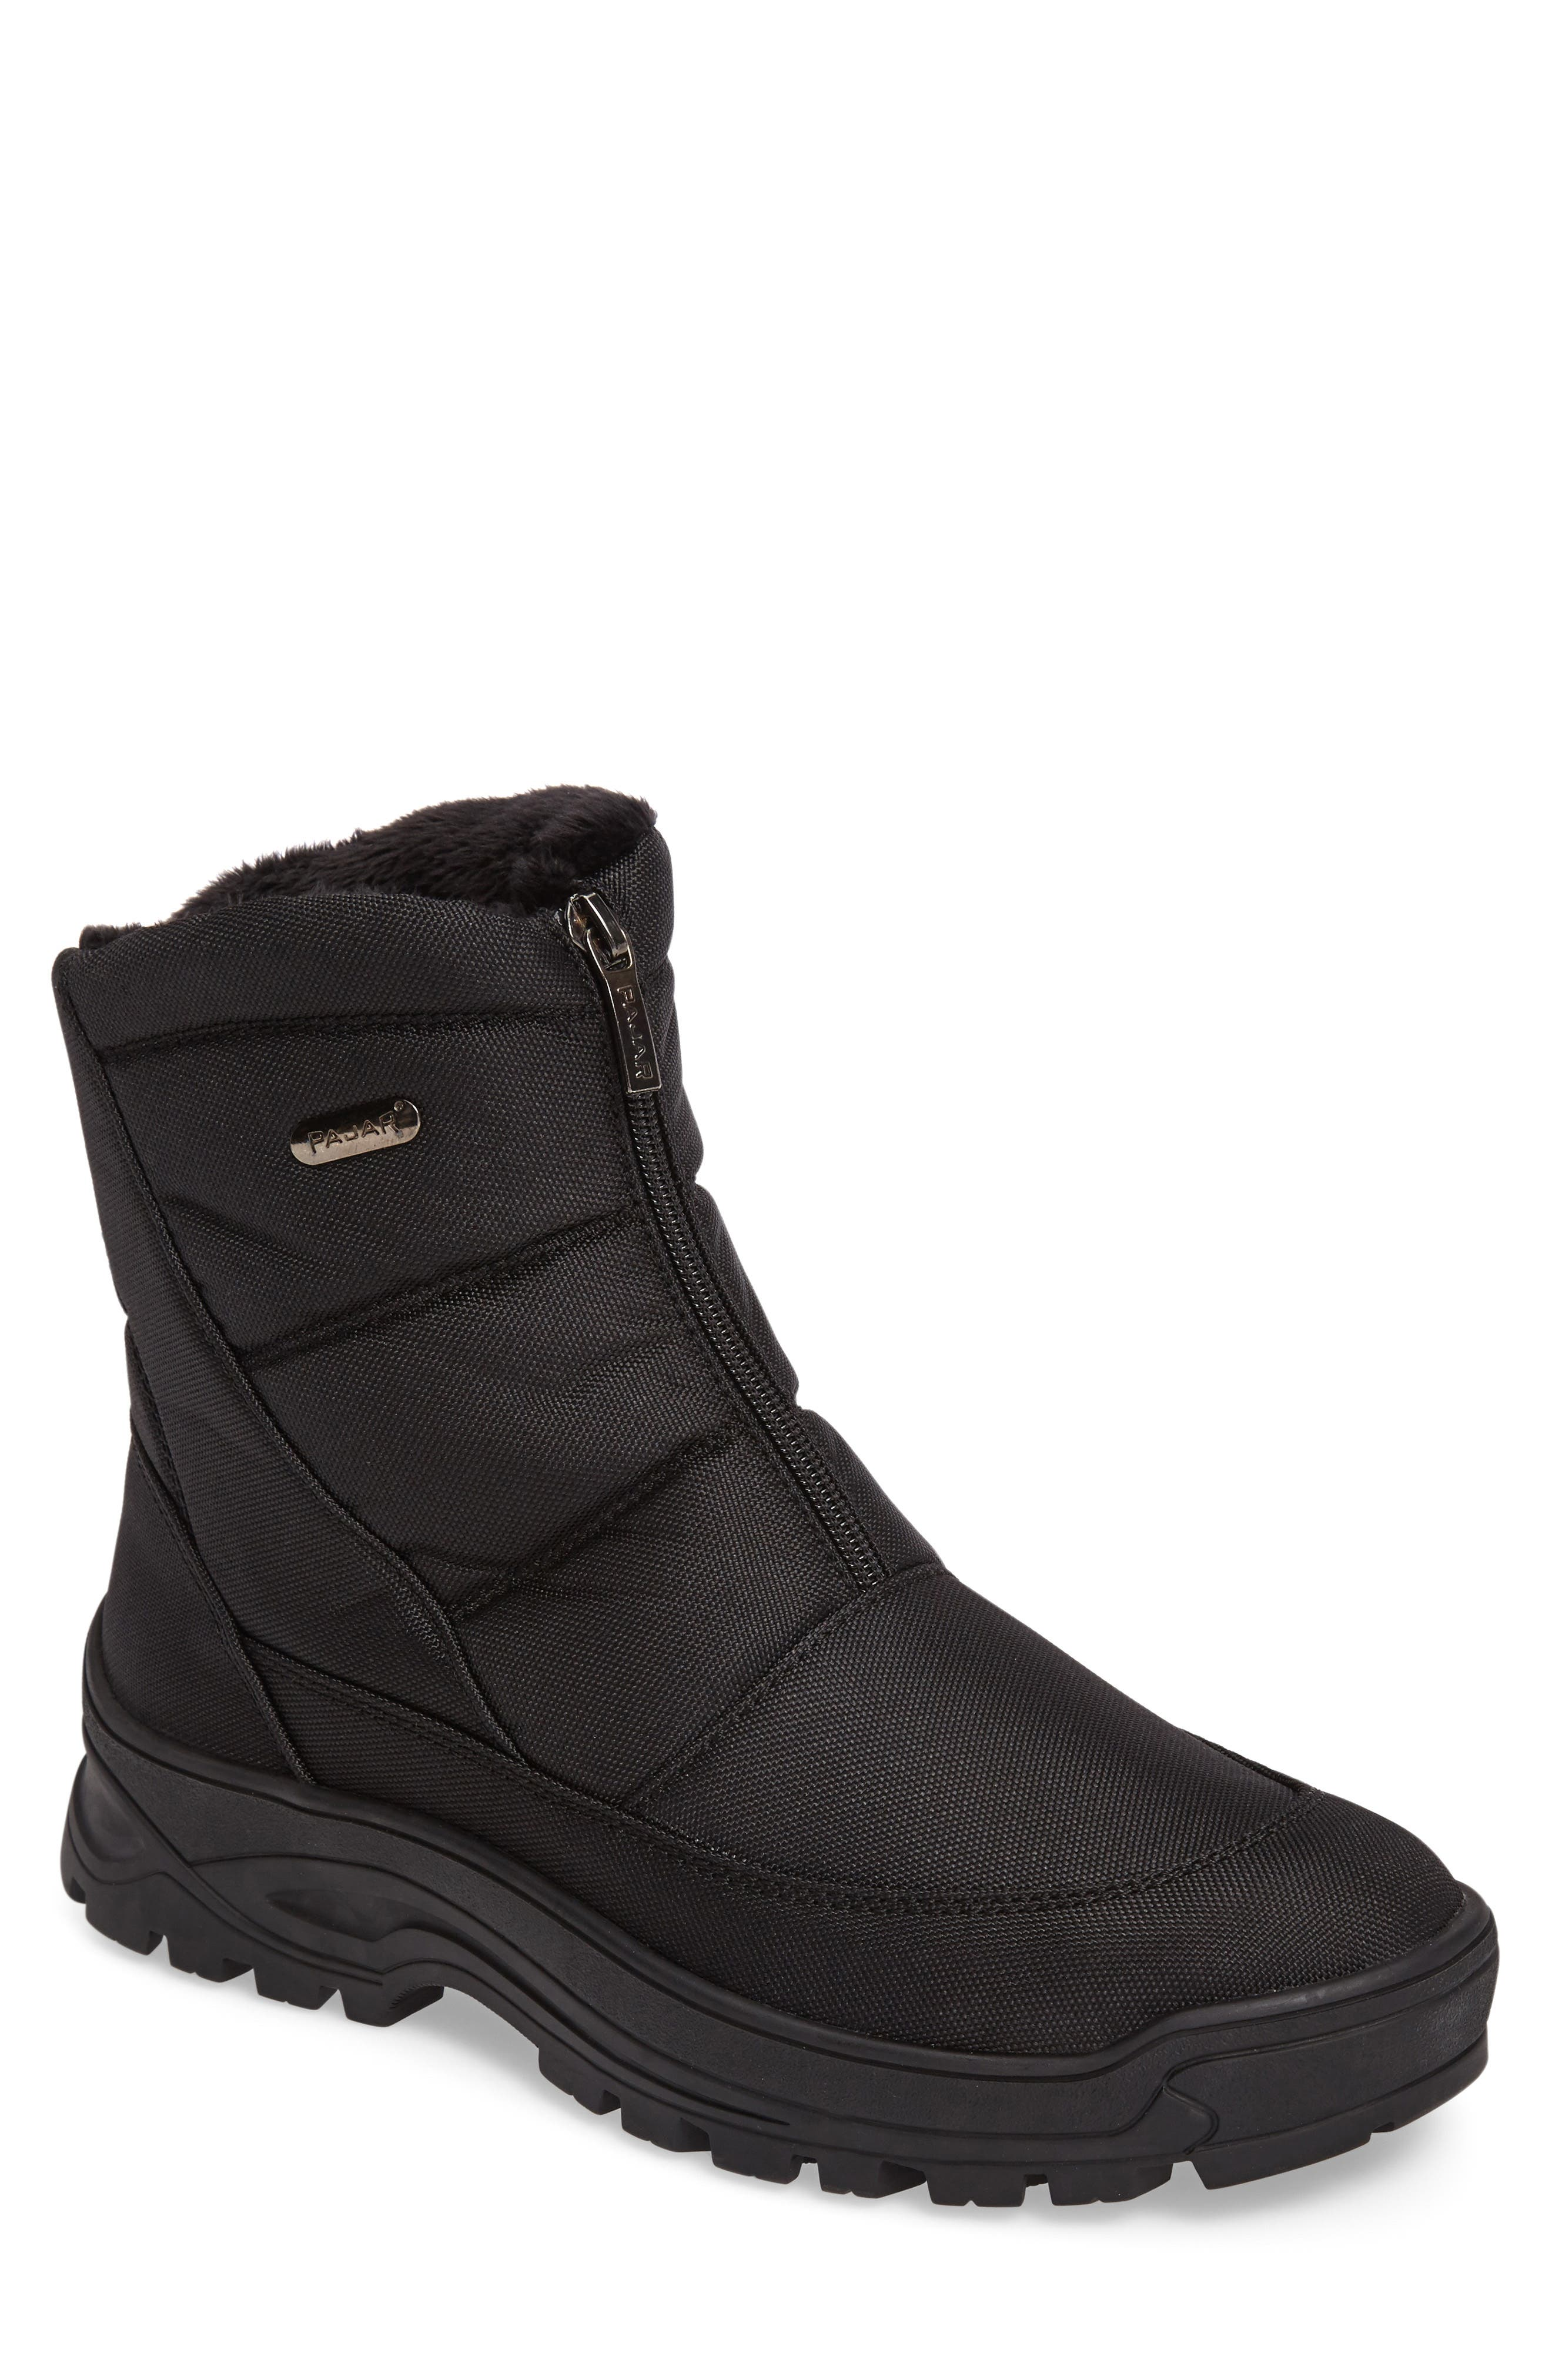 Icepack Boot with Faux Fur Lining,                             Main thumbnail 1, color,                             001